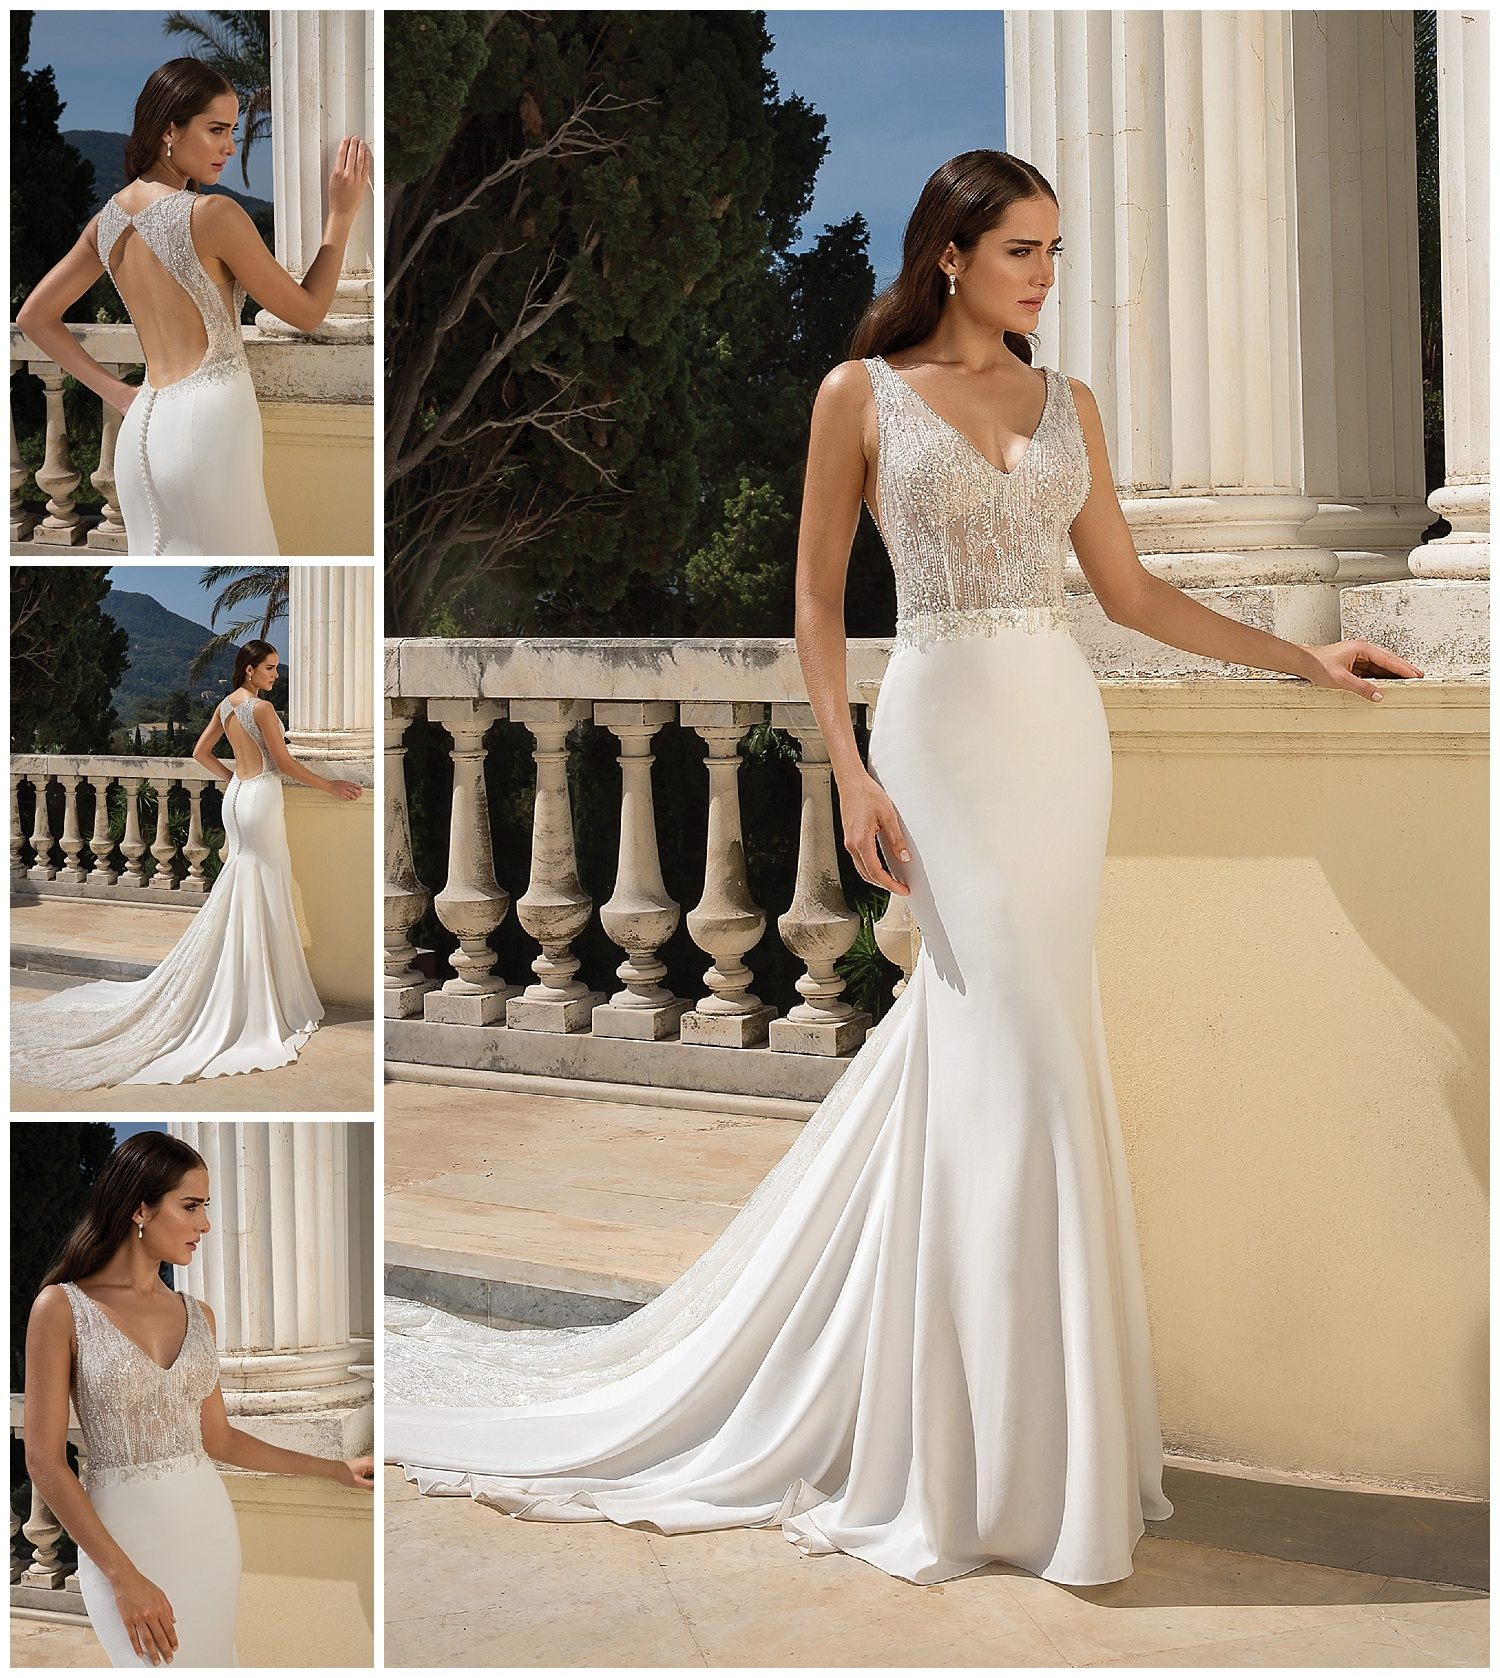 justin-alexander-88090-fitted-crepe-dress-epiphany-boutique-carmel-california.jpg